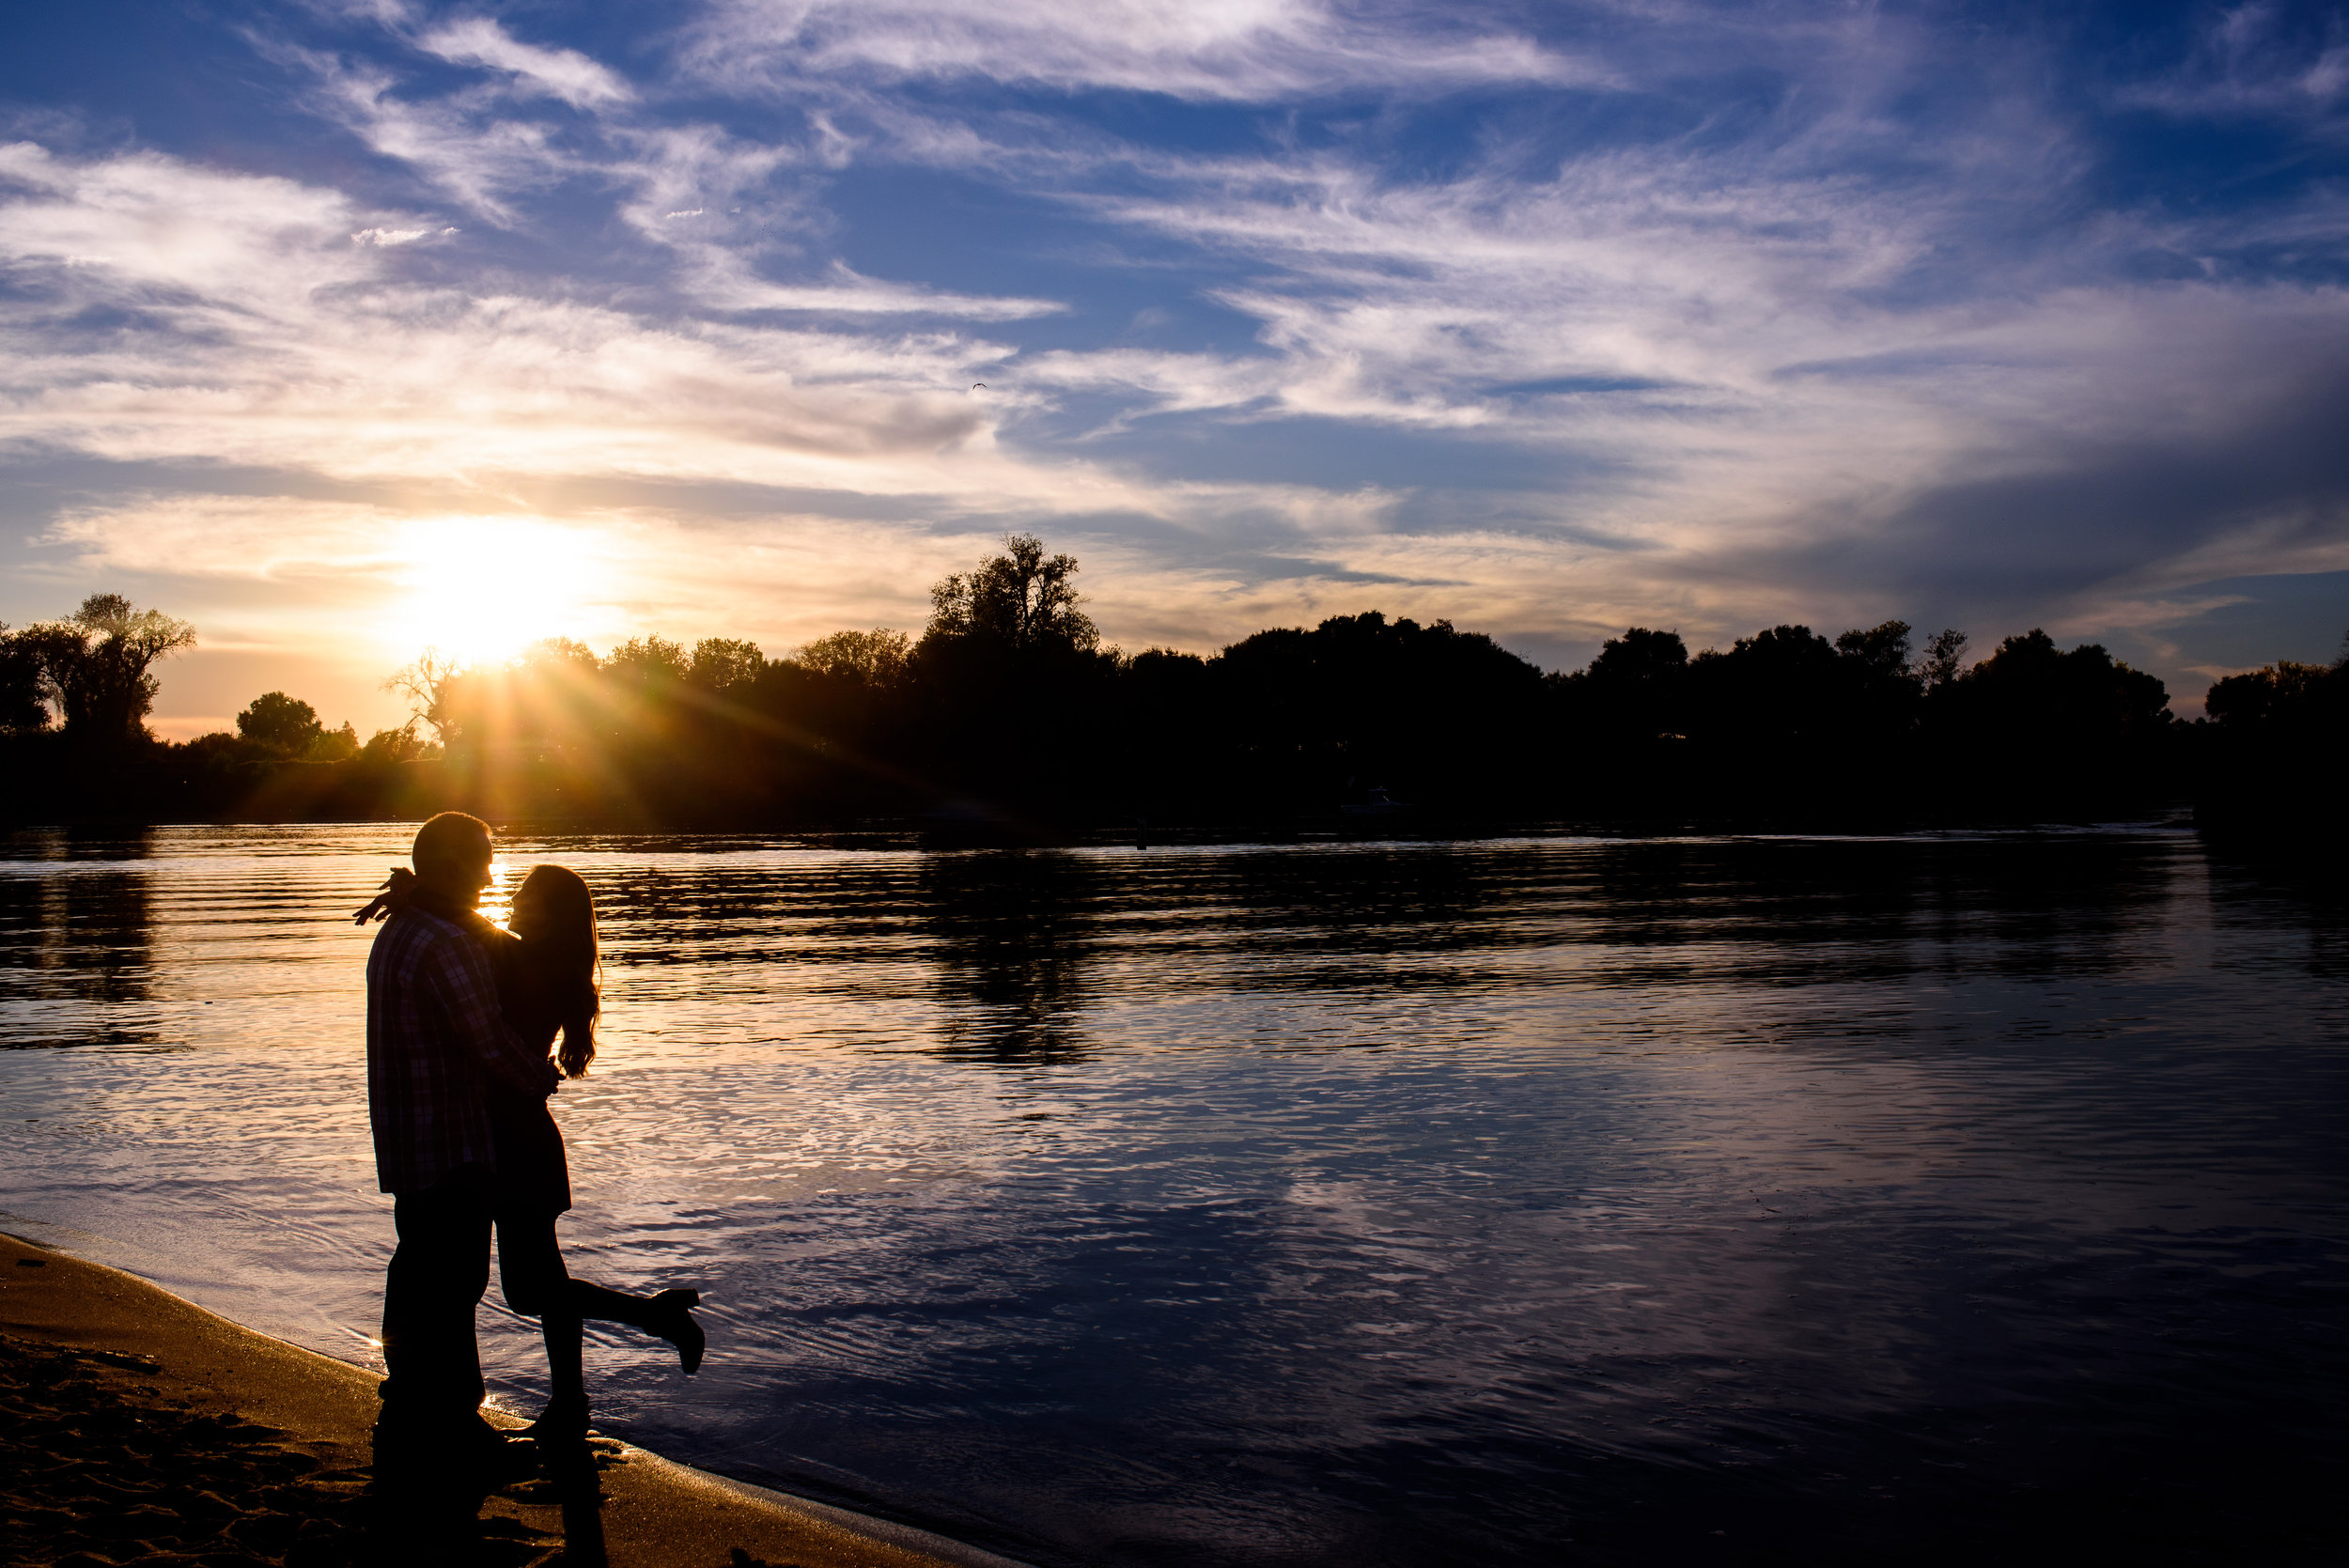 nicole-luke-010-sacramento-engagement-wedding-photographer-katherine-nicole-photography.JPG